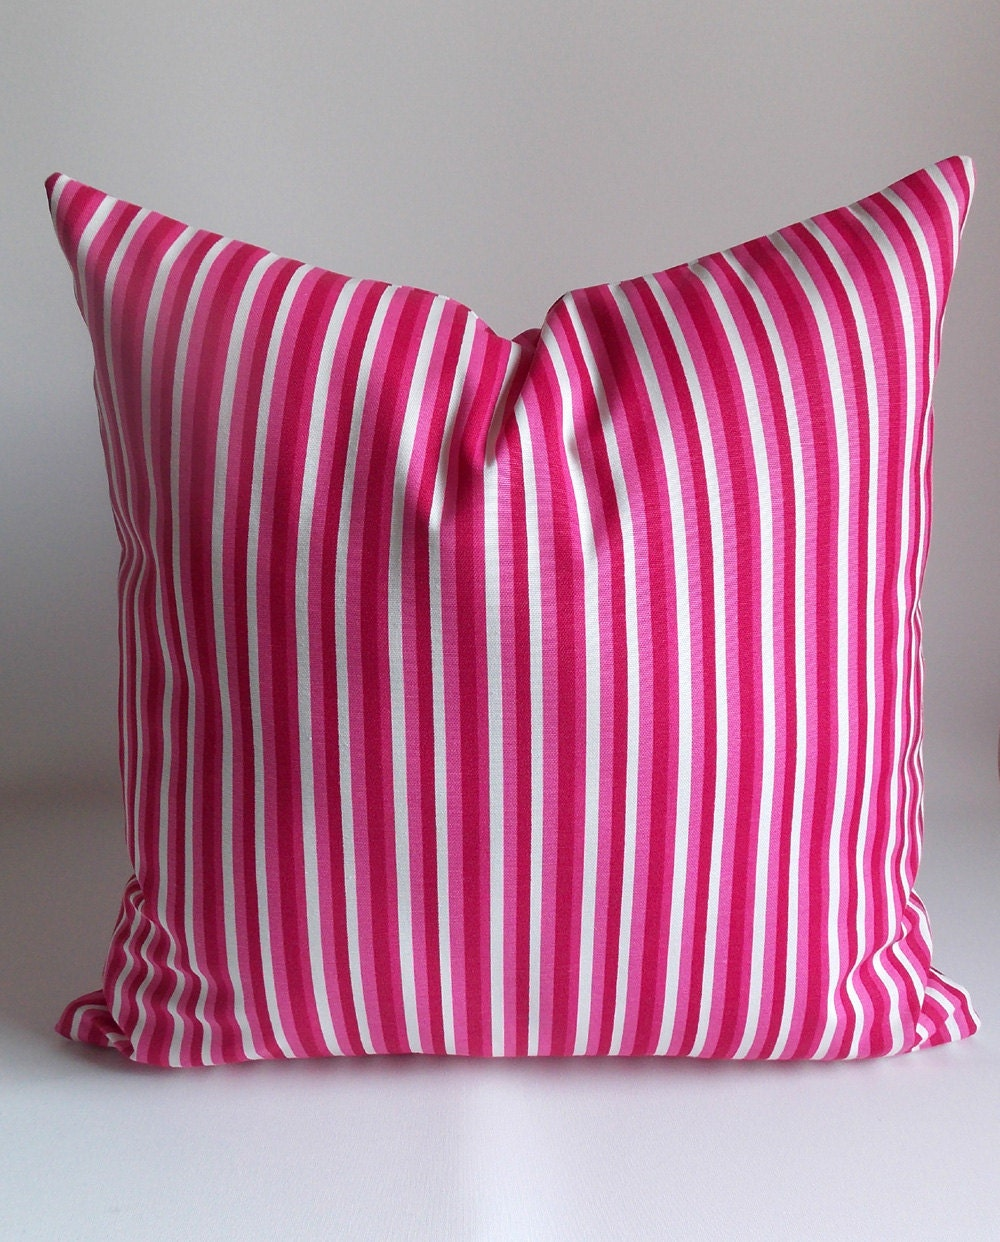 Decorative Pillows With Stripes : Pink Striped pillow Decorative pillow Throw pillow